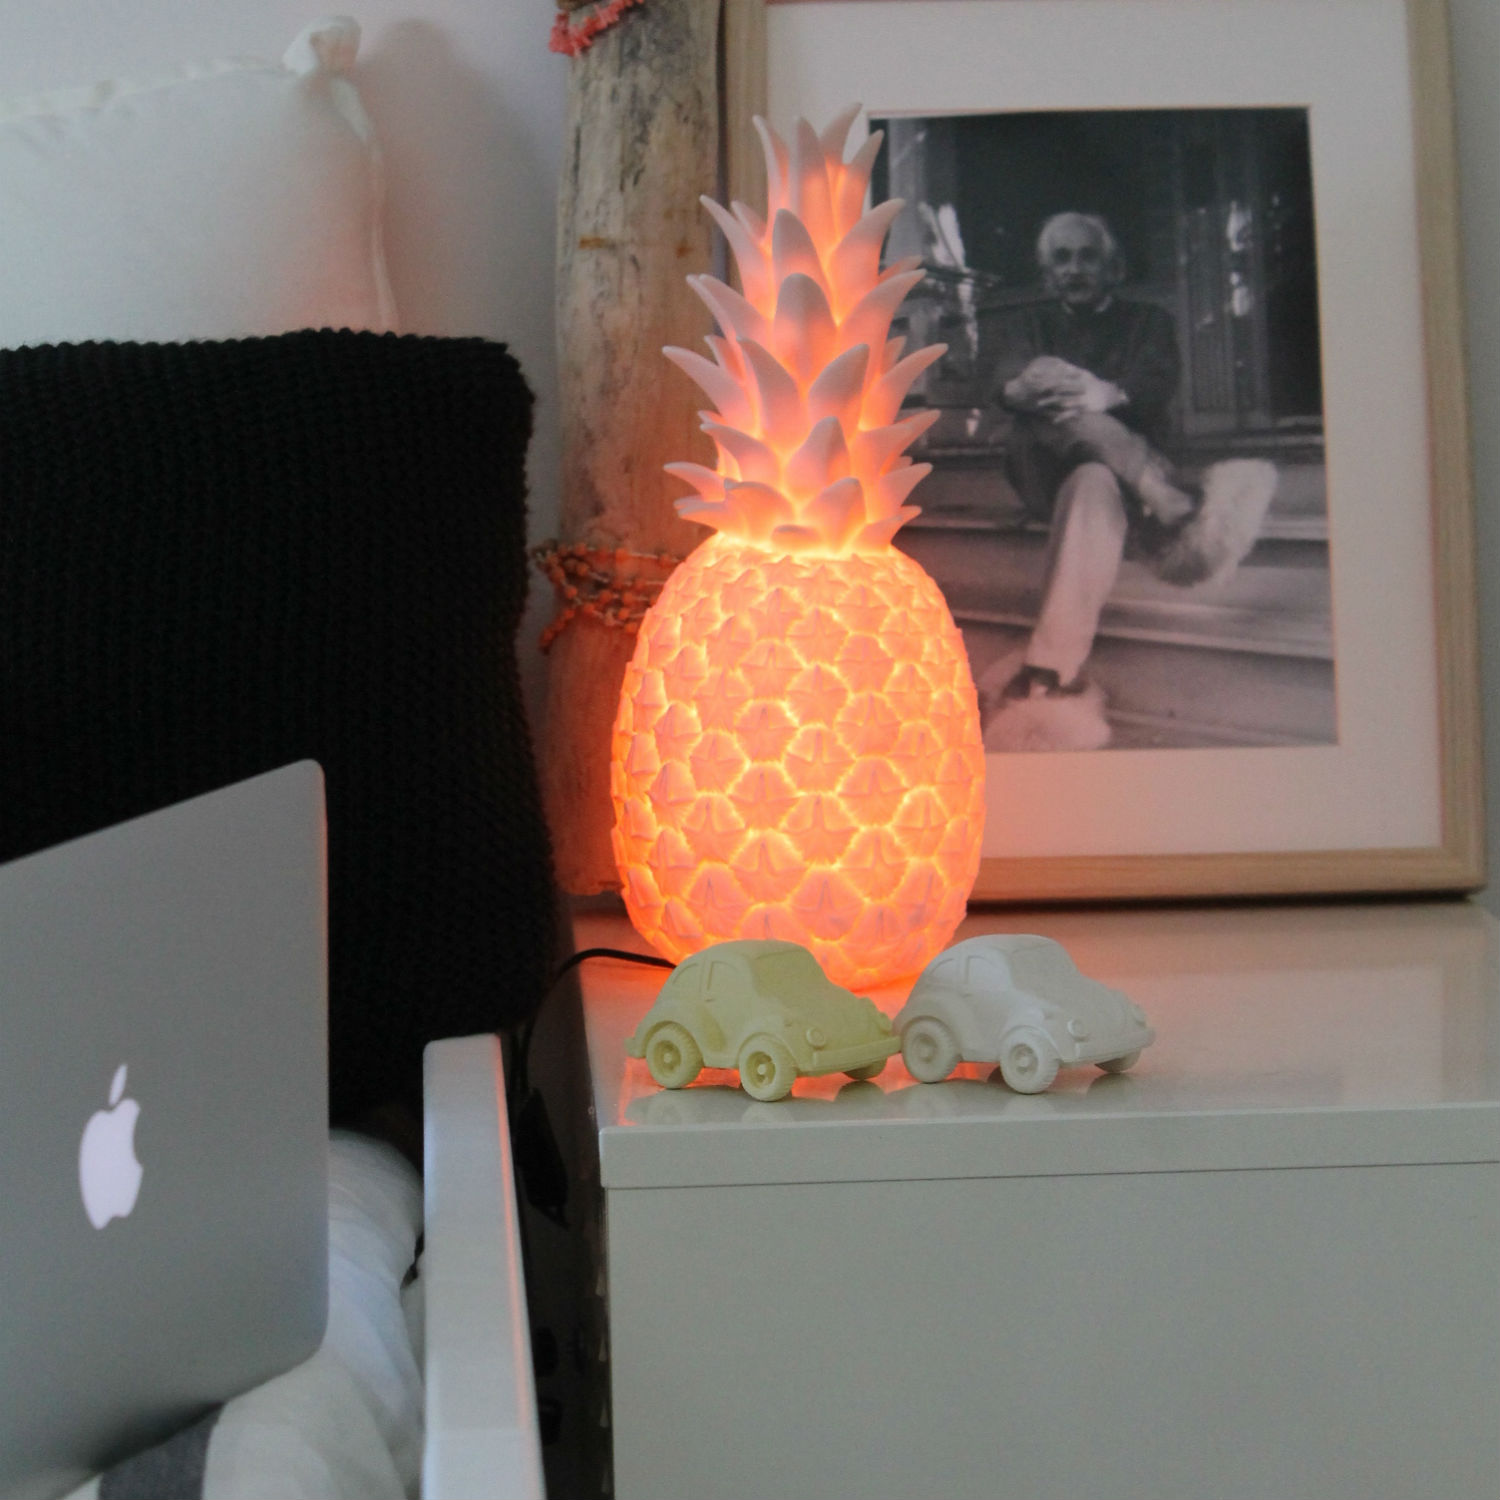 lampe ananas pina colada rose pastel h32cm goodnight light luminaires nedgis. Black Bedroom Furniture Sets. Home Design Ideas